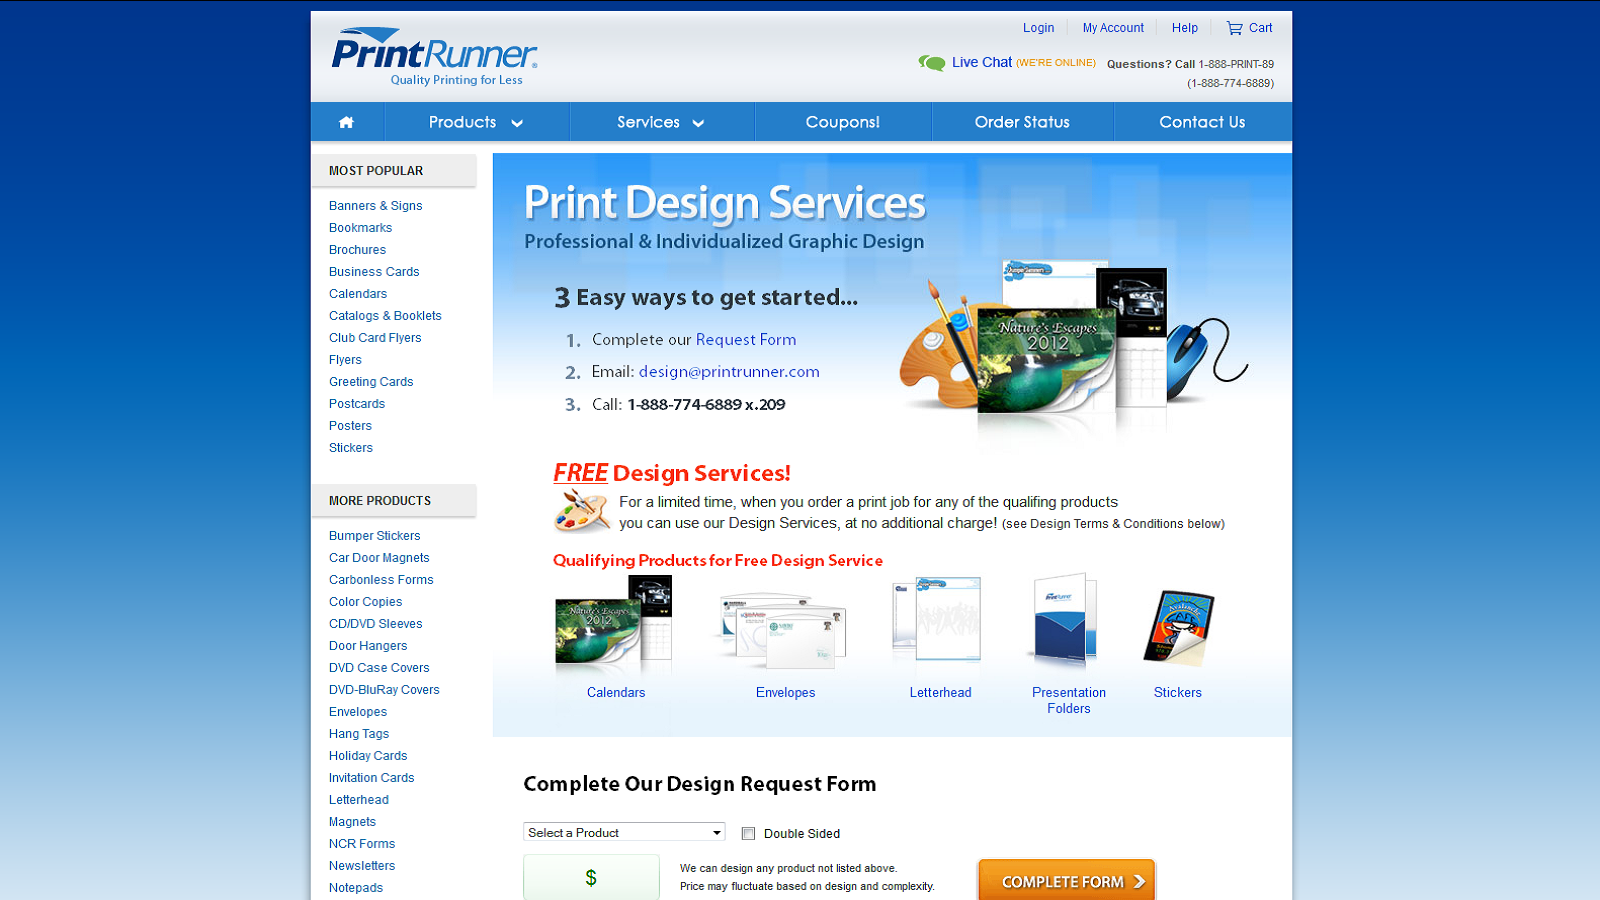 Get Free Design Services On Digital Printing